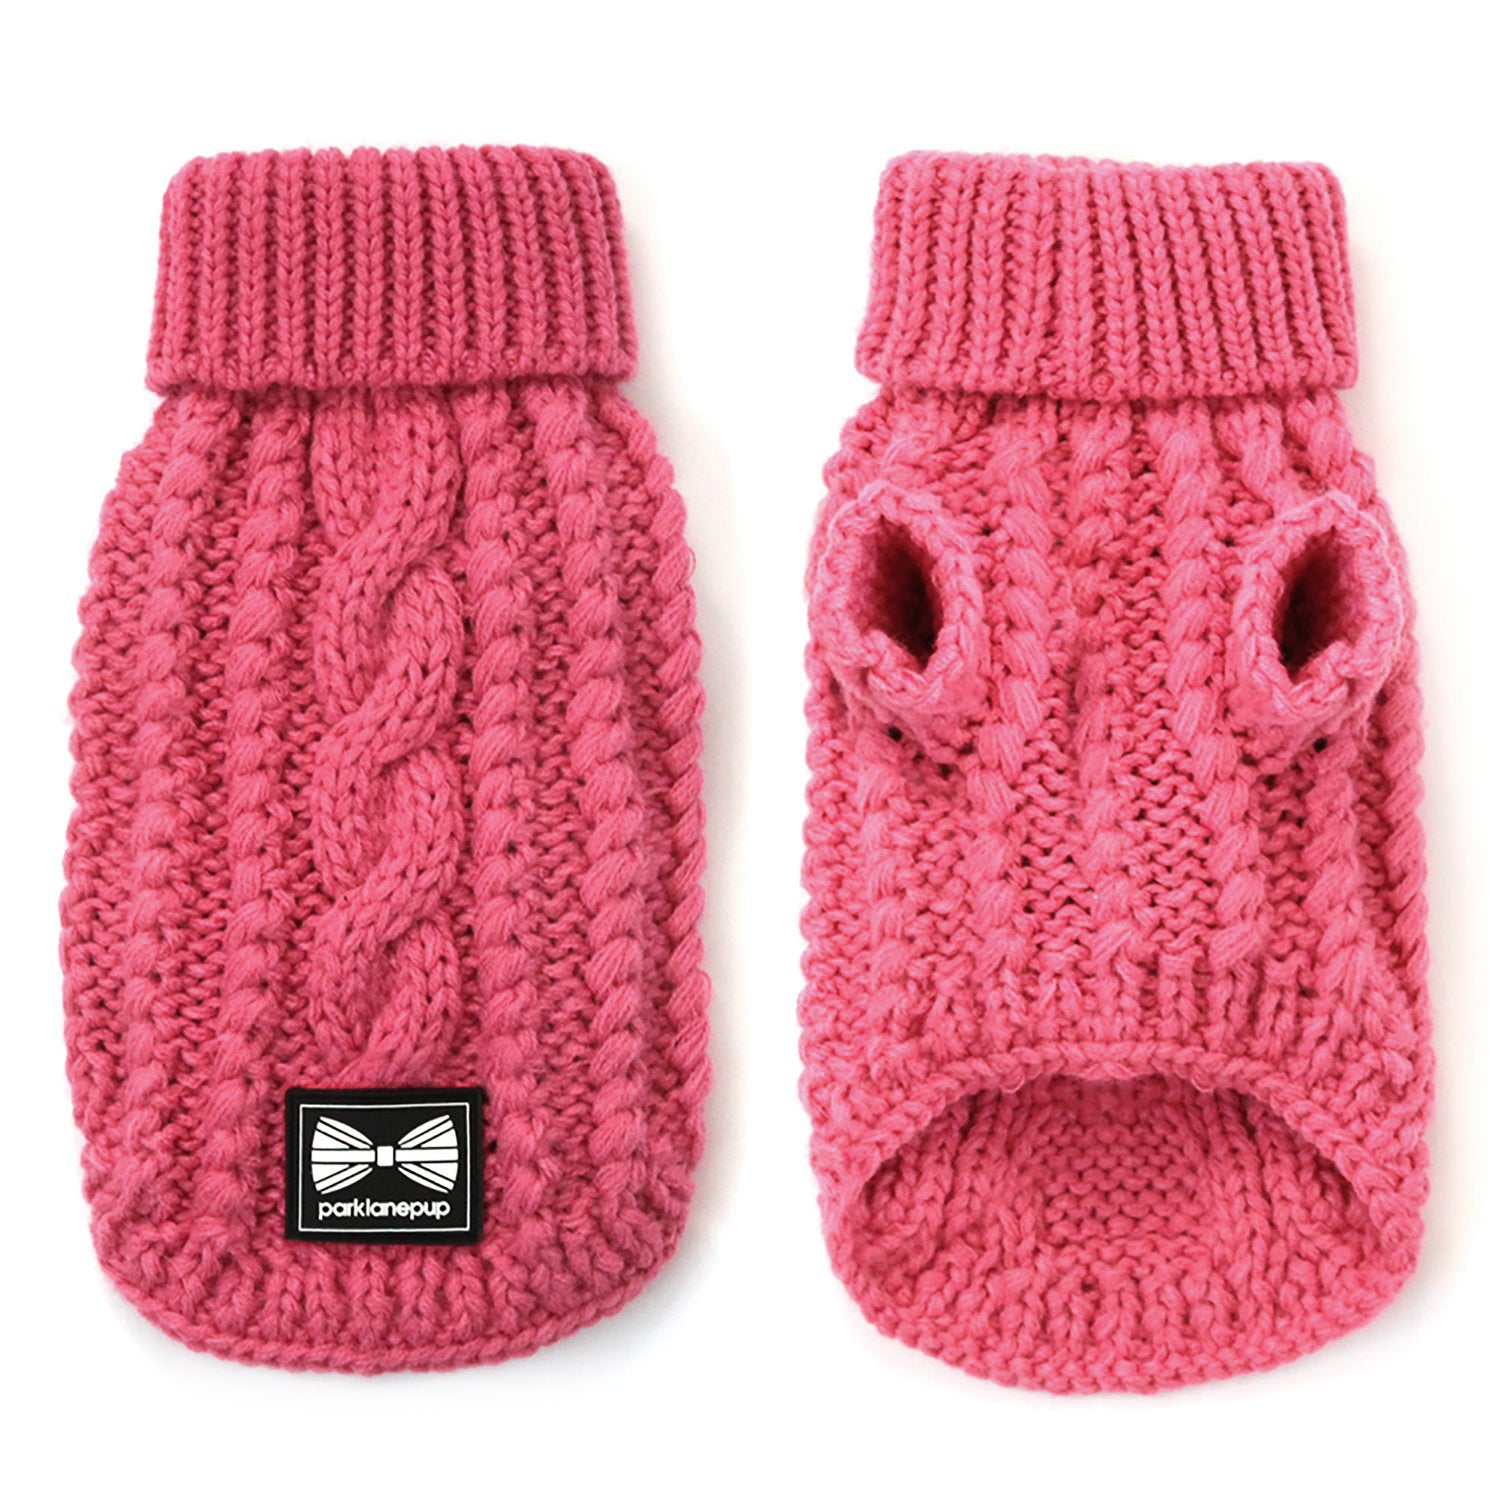 Cosy Knitted Jumper: Pretty Pink